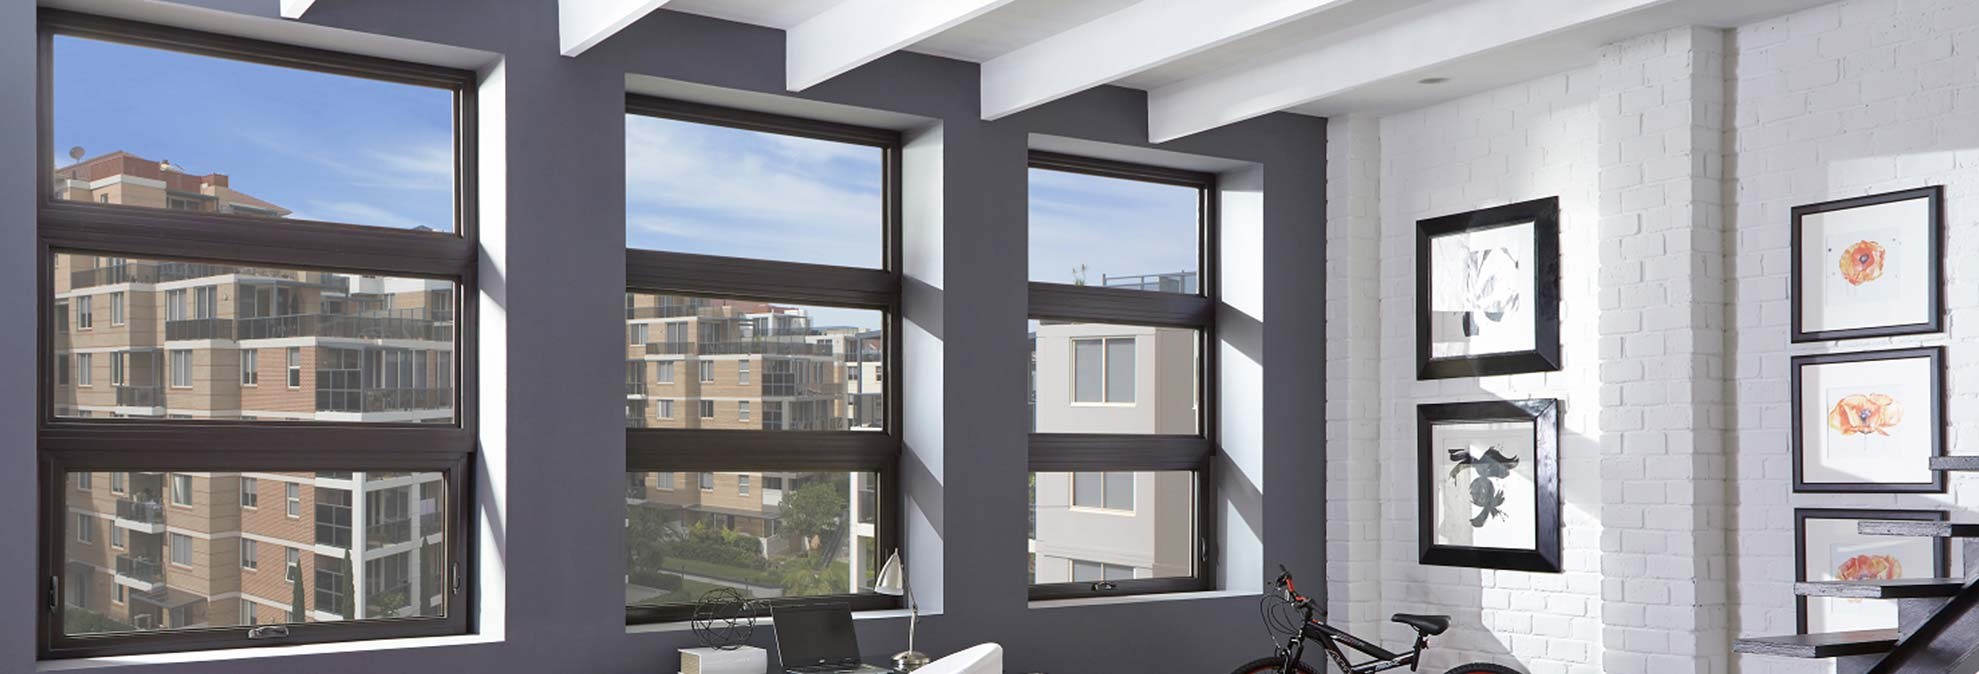 consumer reports replacement windows simonton big windows that bring the outside in consumer reports